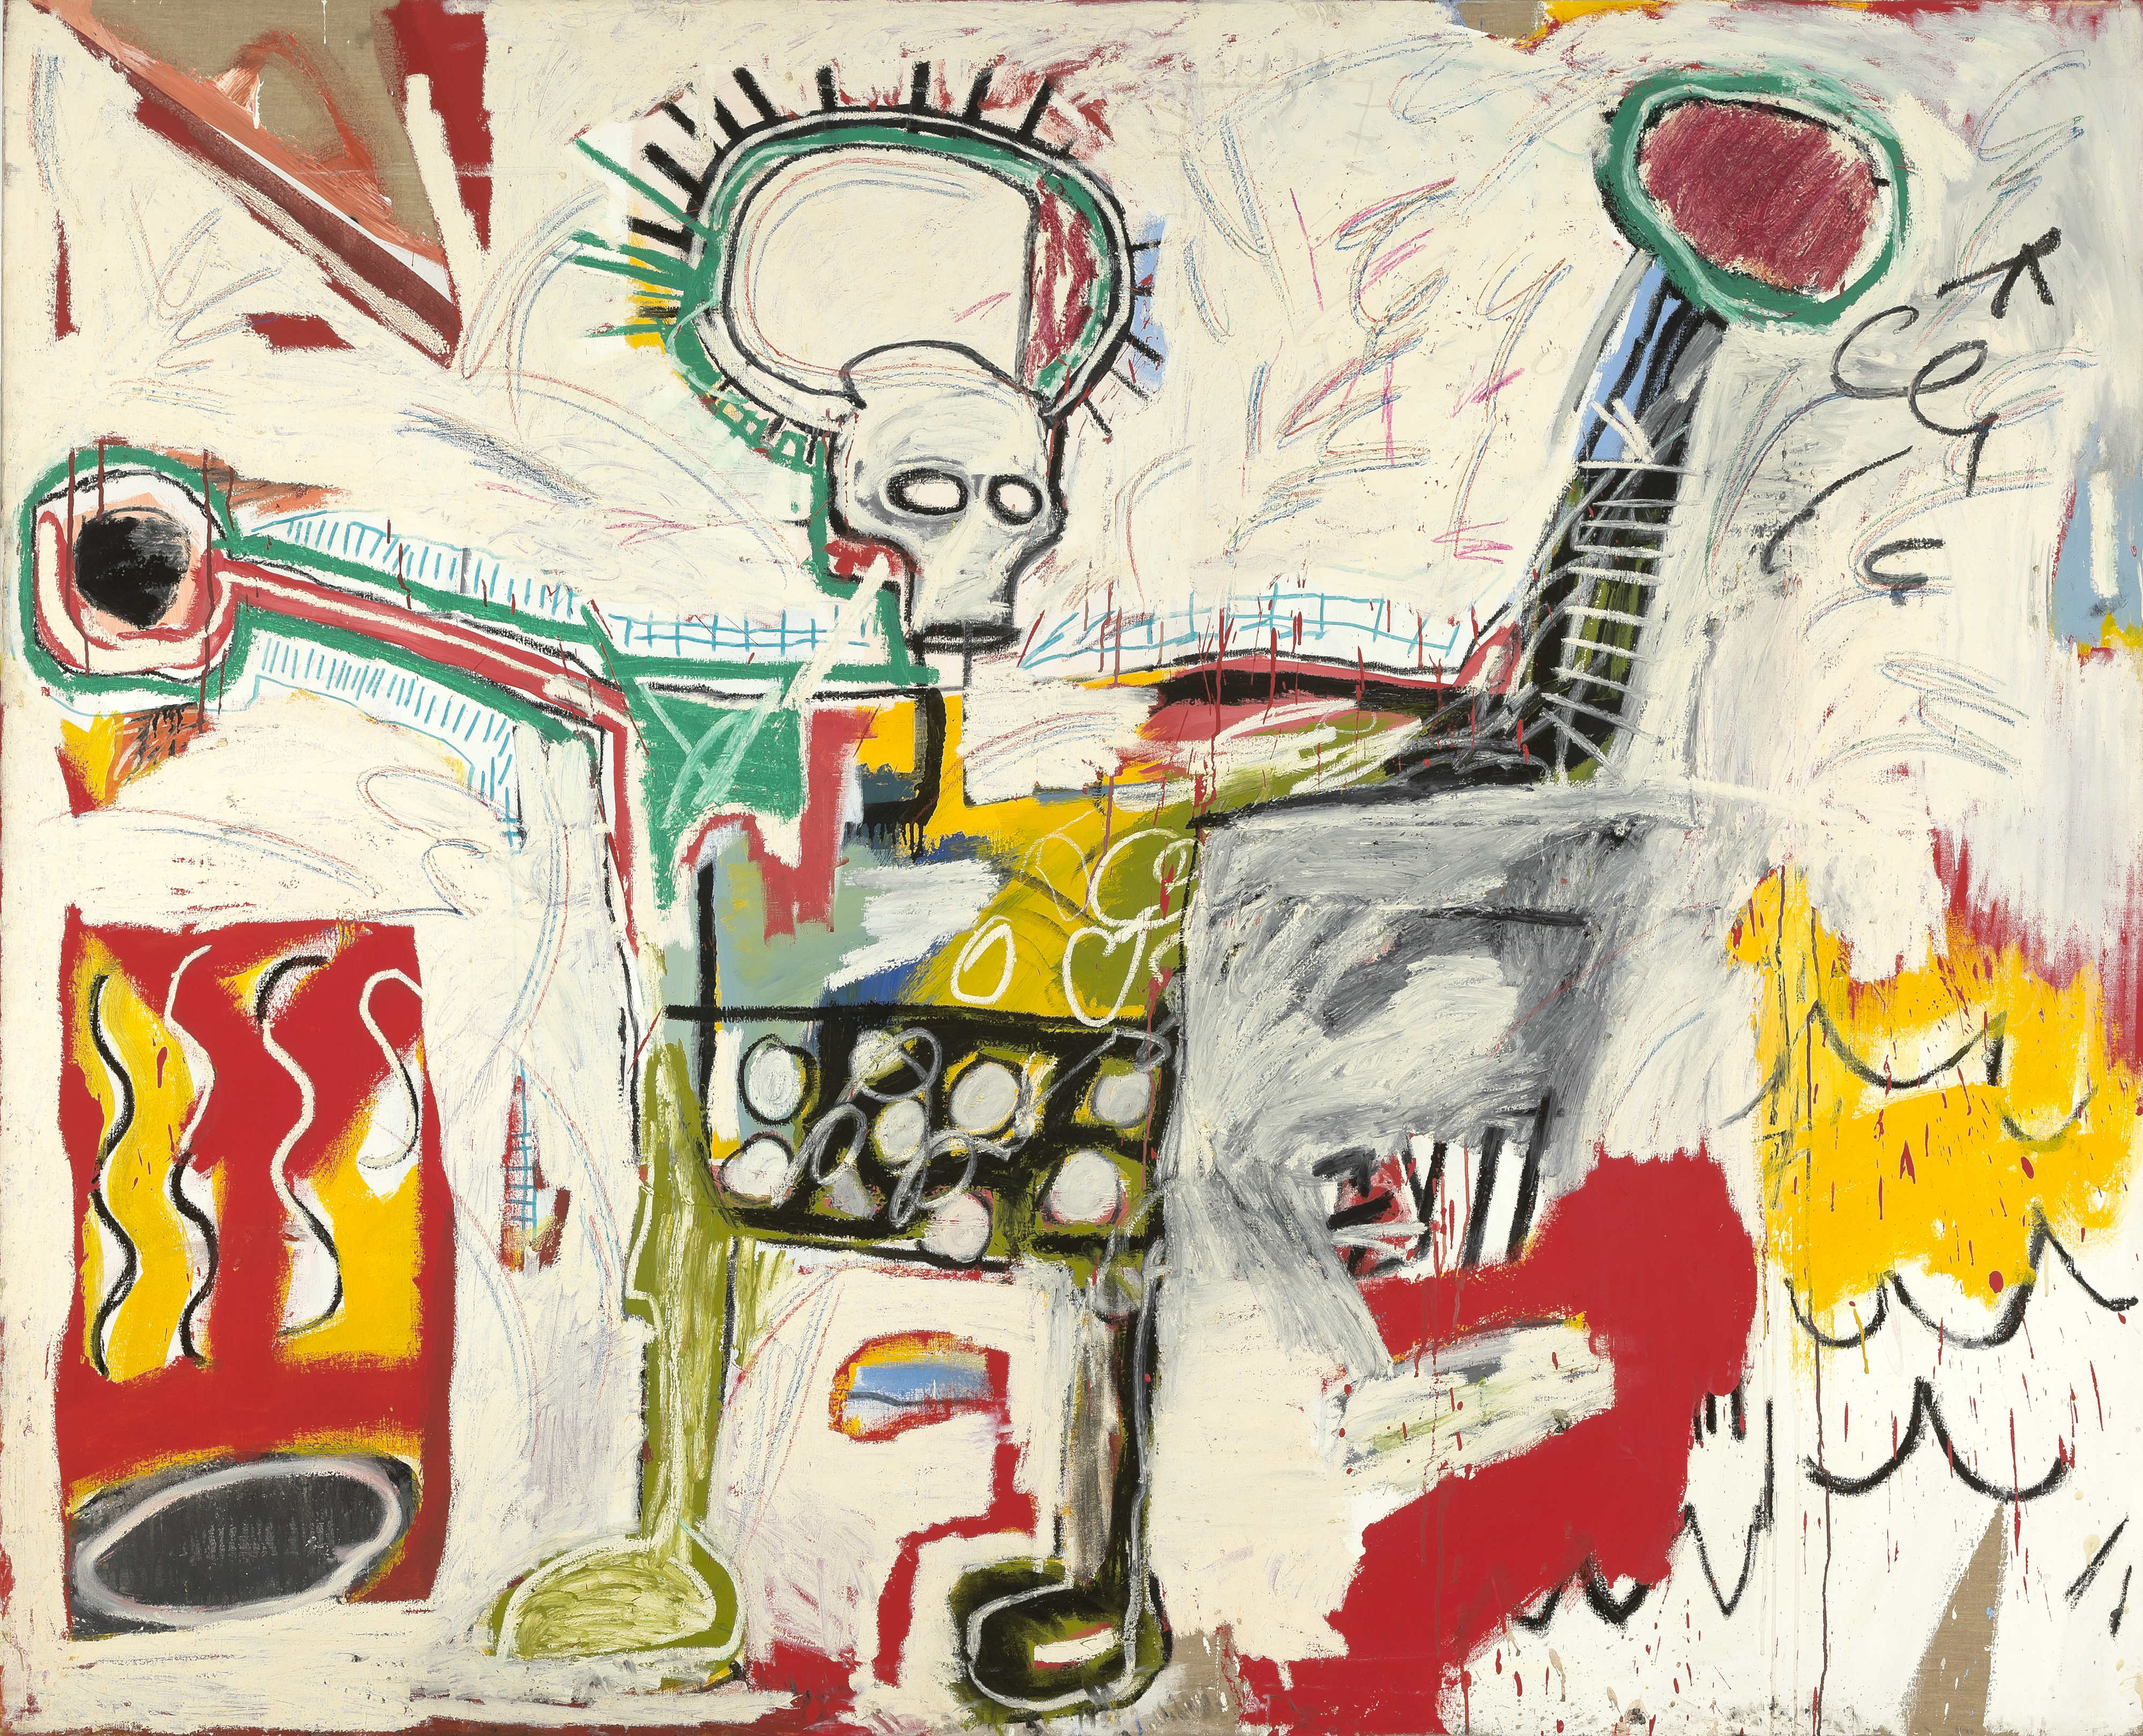 a critique of the paintings done by jean michel basquiat Jean-michel basquiat and the quest for a new semiotic machine  this series of paintings, done between 1984-85,  kant's critique of pure reason .